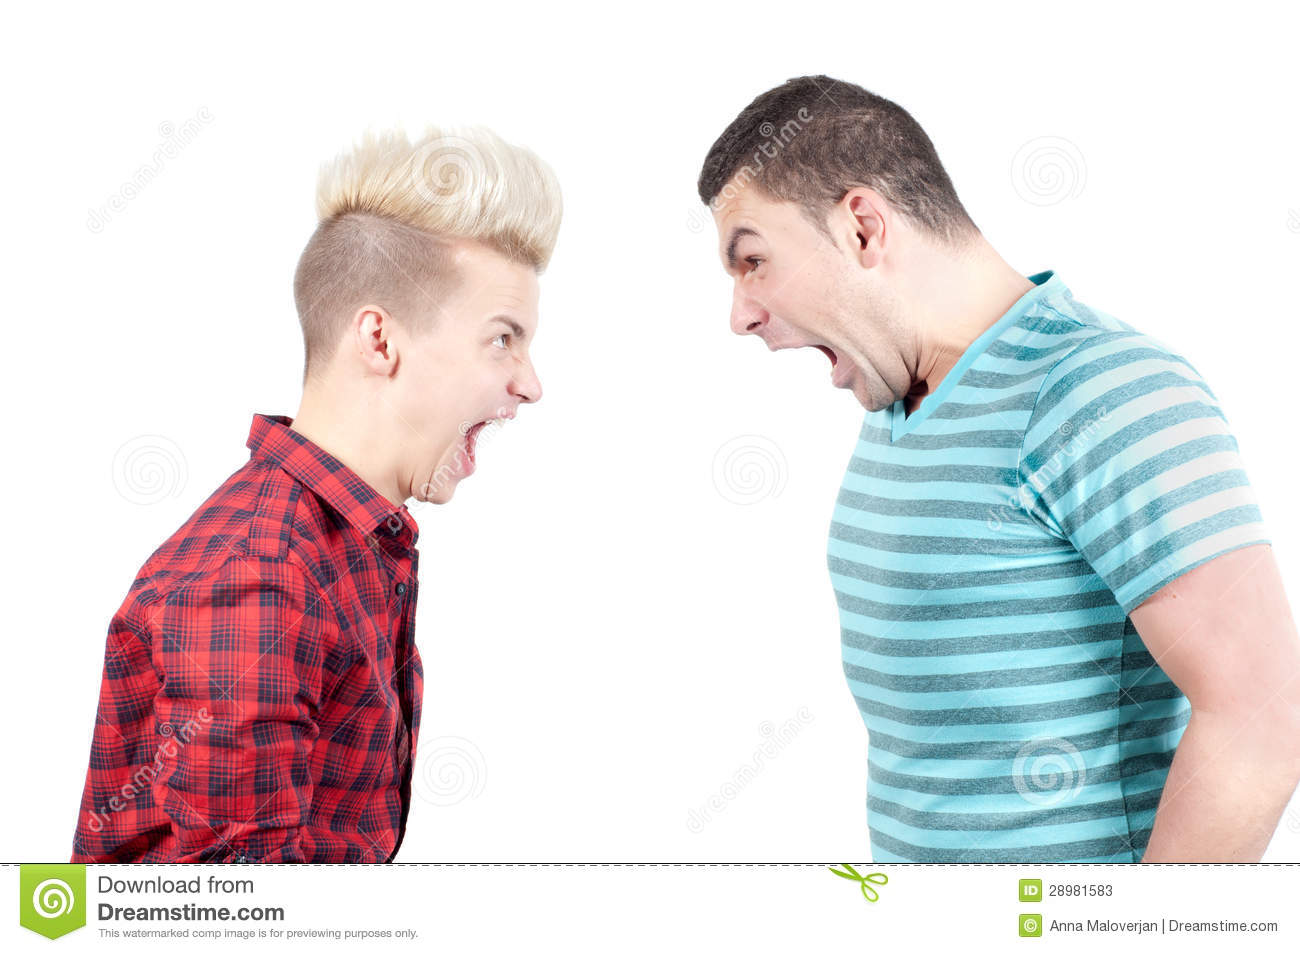 Two Man Screaming On Each Other Stock Photos - Image: 28981583